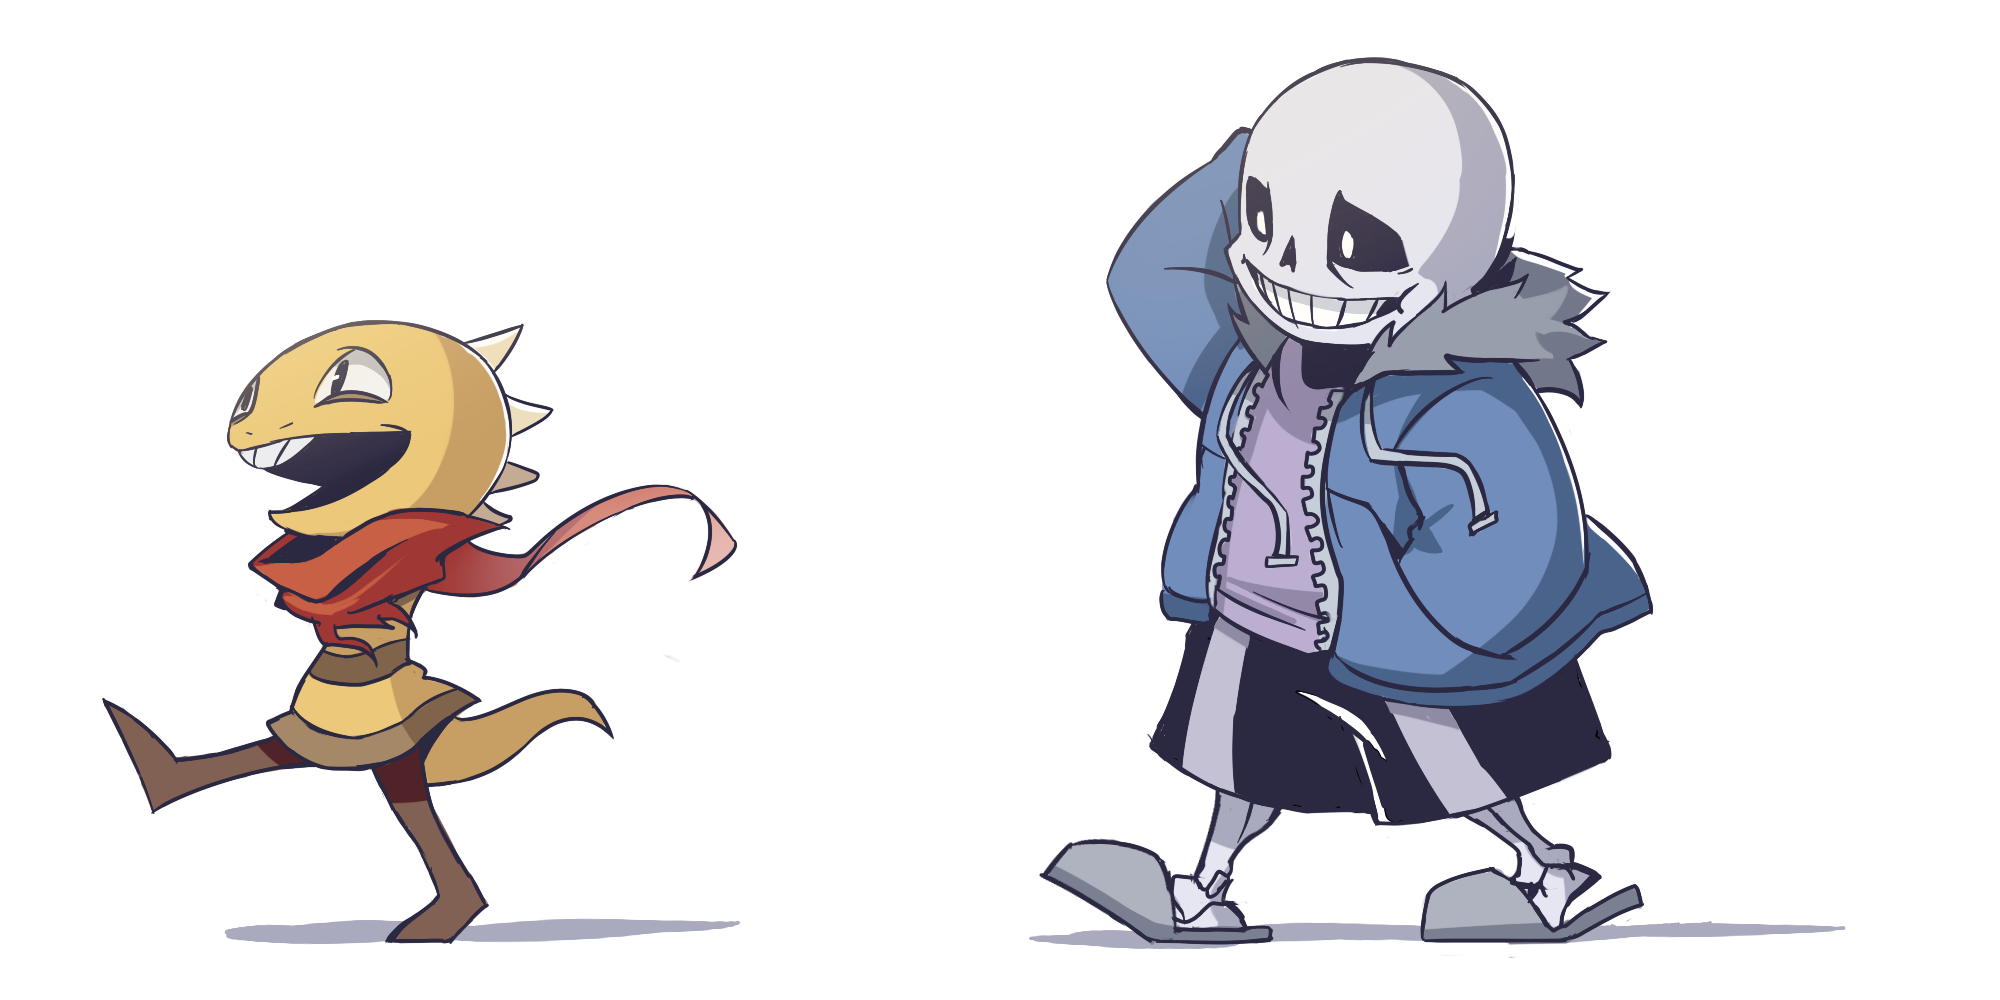 monster kid and sans from #undertale, for an art trade with @RinTheYordle https://t.co/l4wk6PqTxw